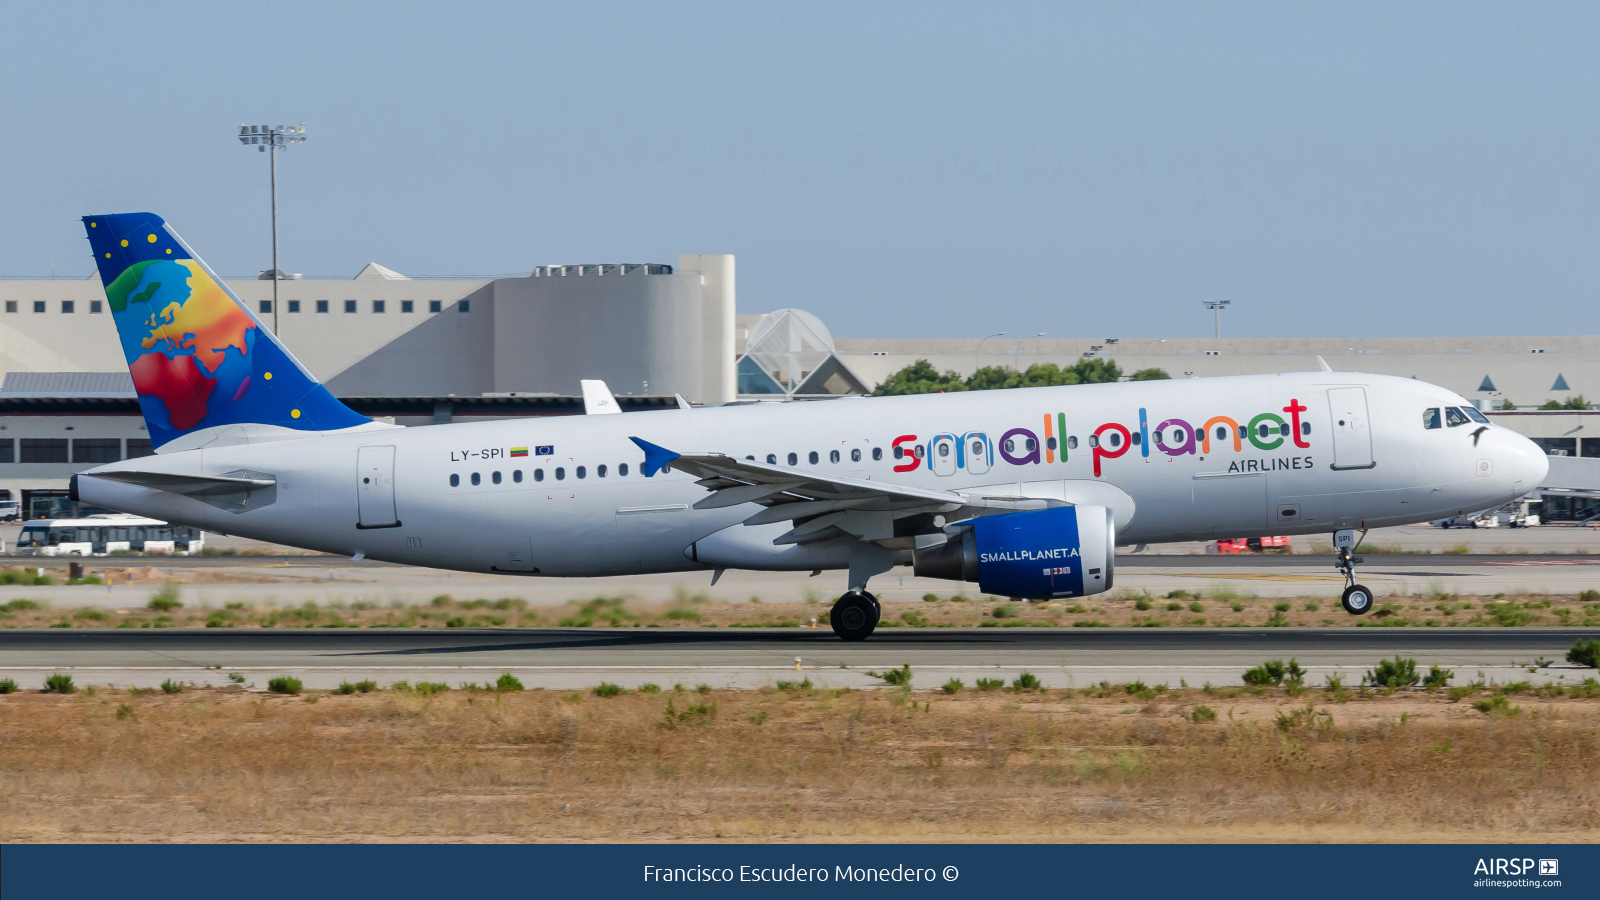 Small Planet AirlinesAirbus A320LY-SPI